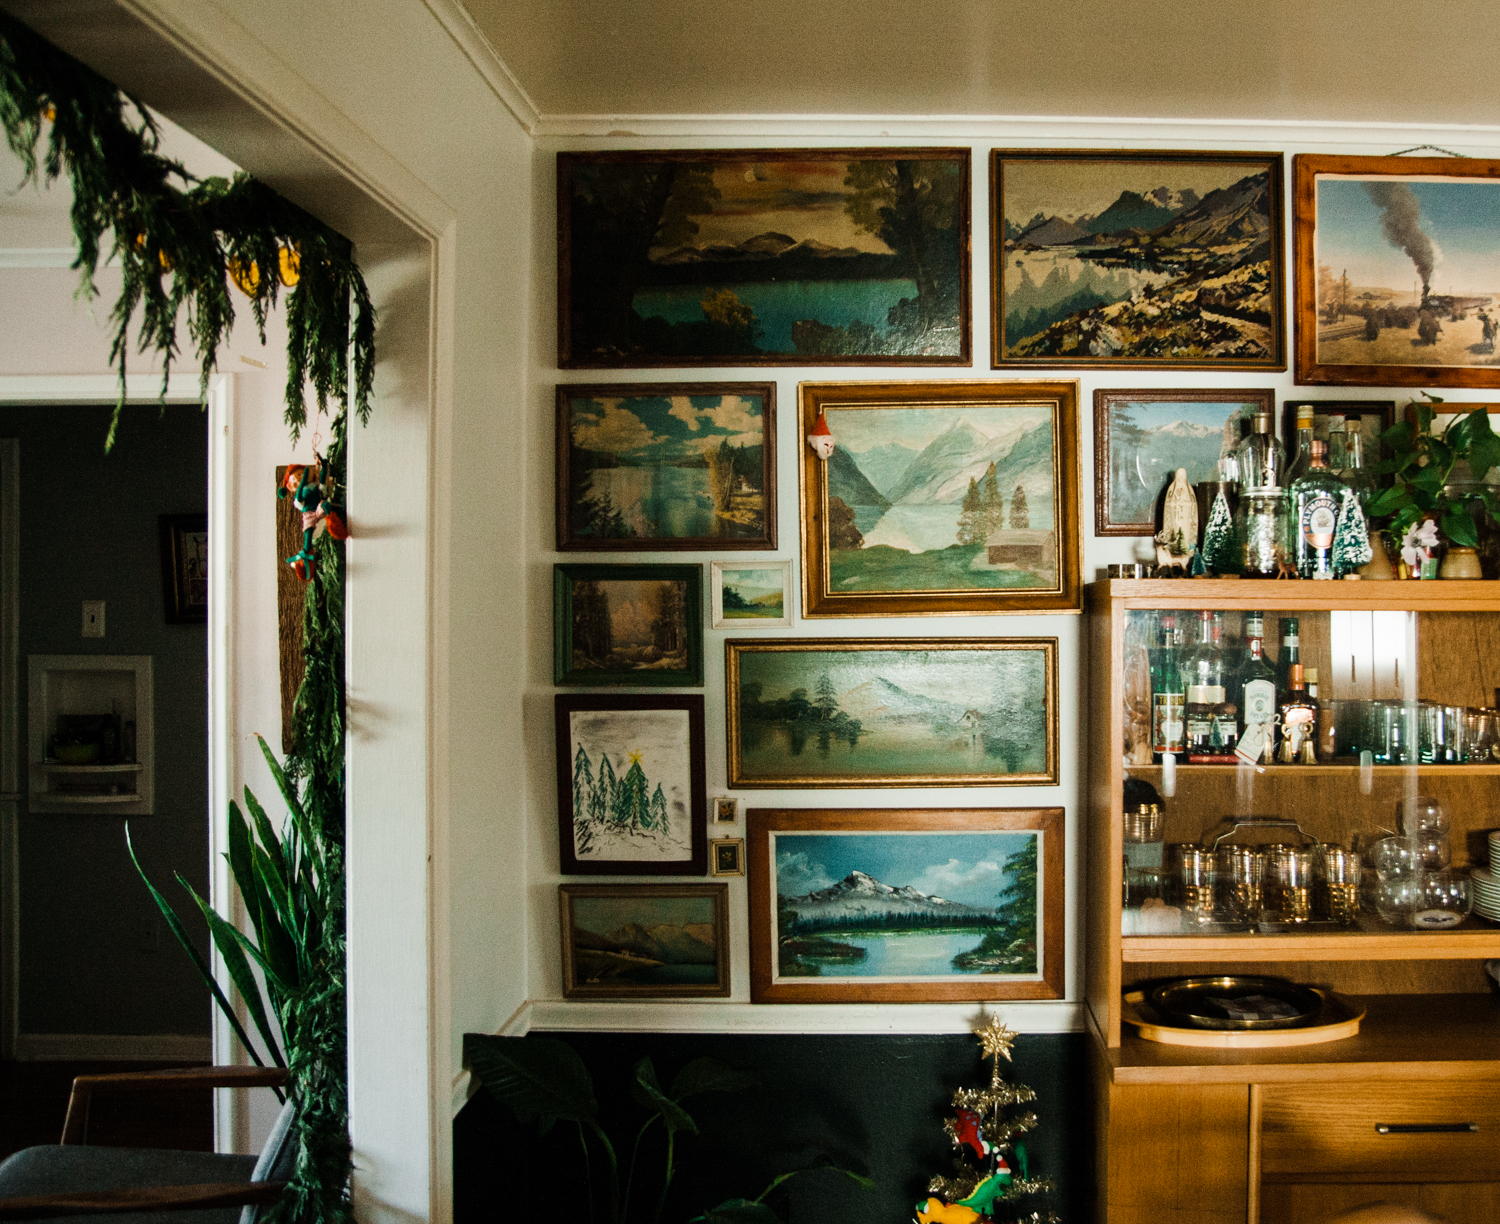 daly holiday home tour-24.jpg